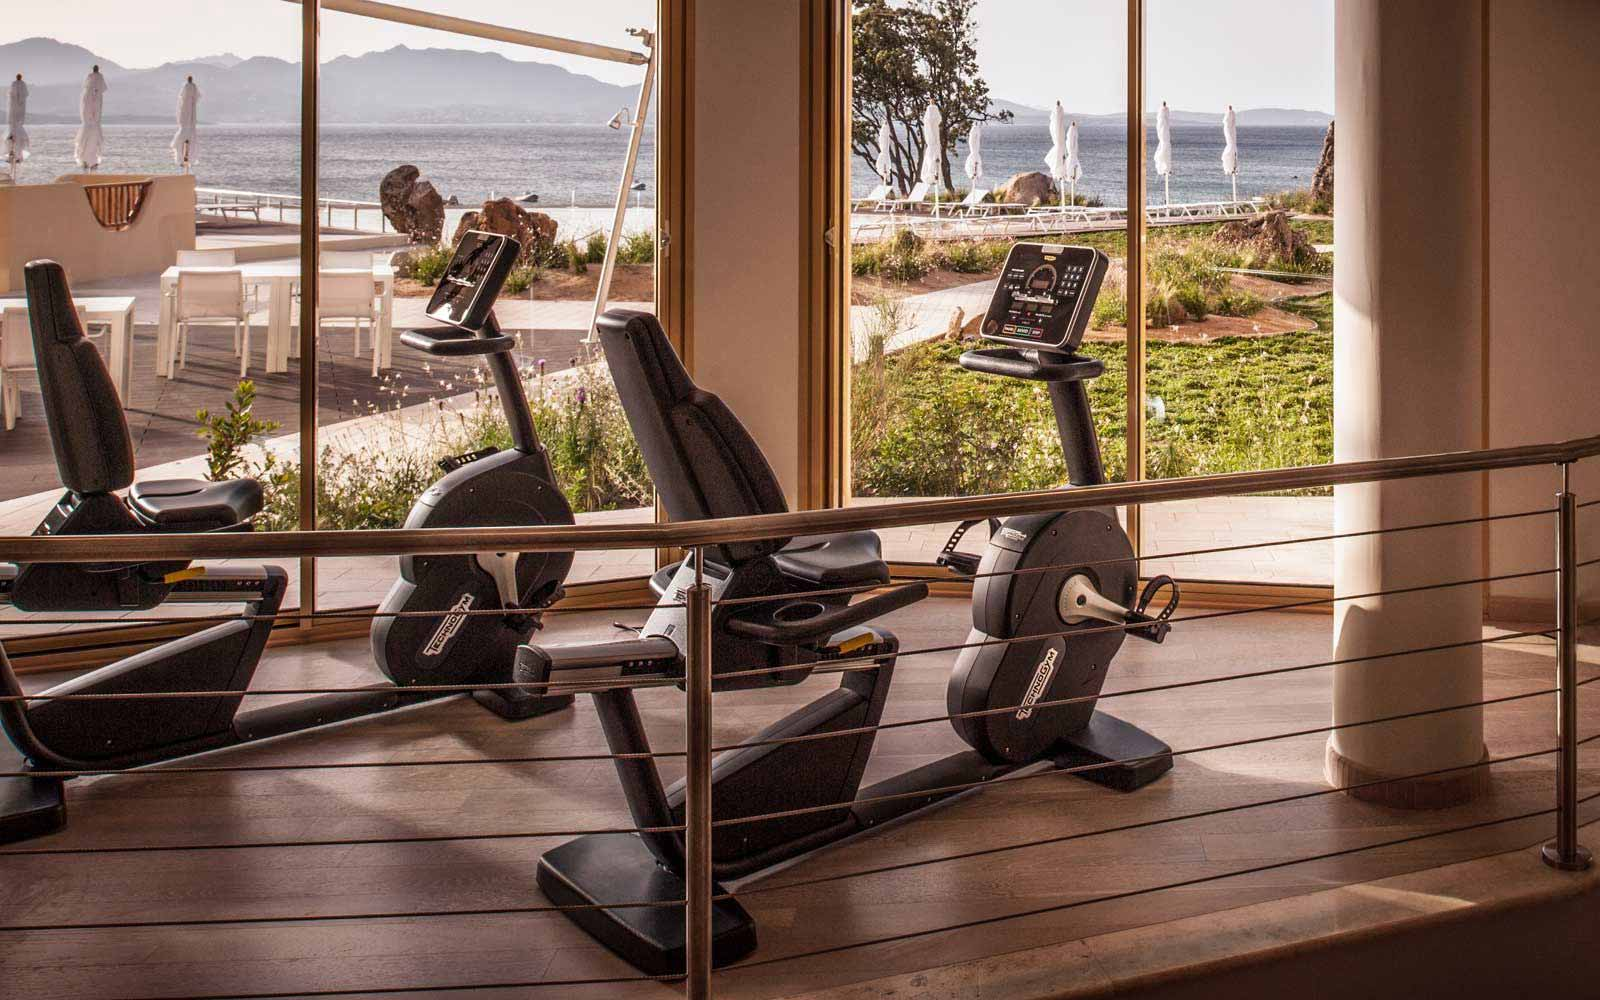 Fitness room at Hotel CalaCuncheddi